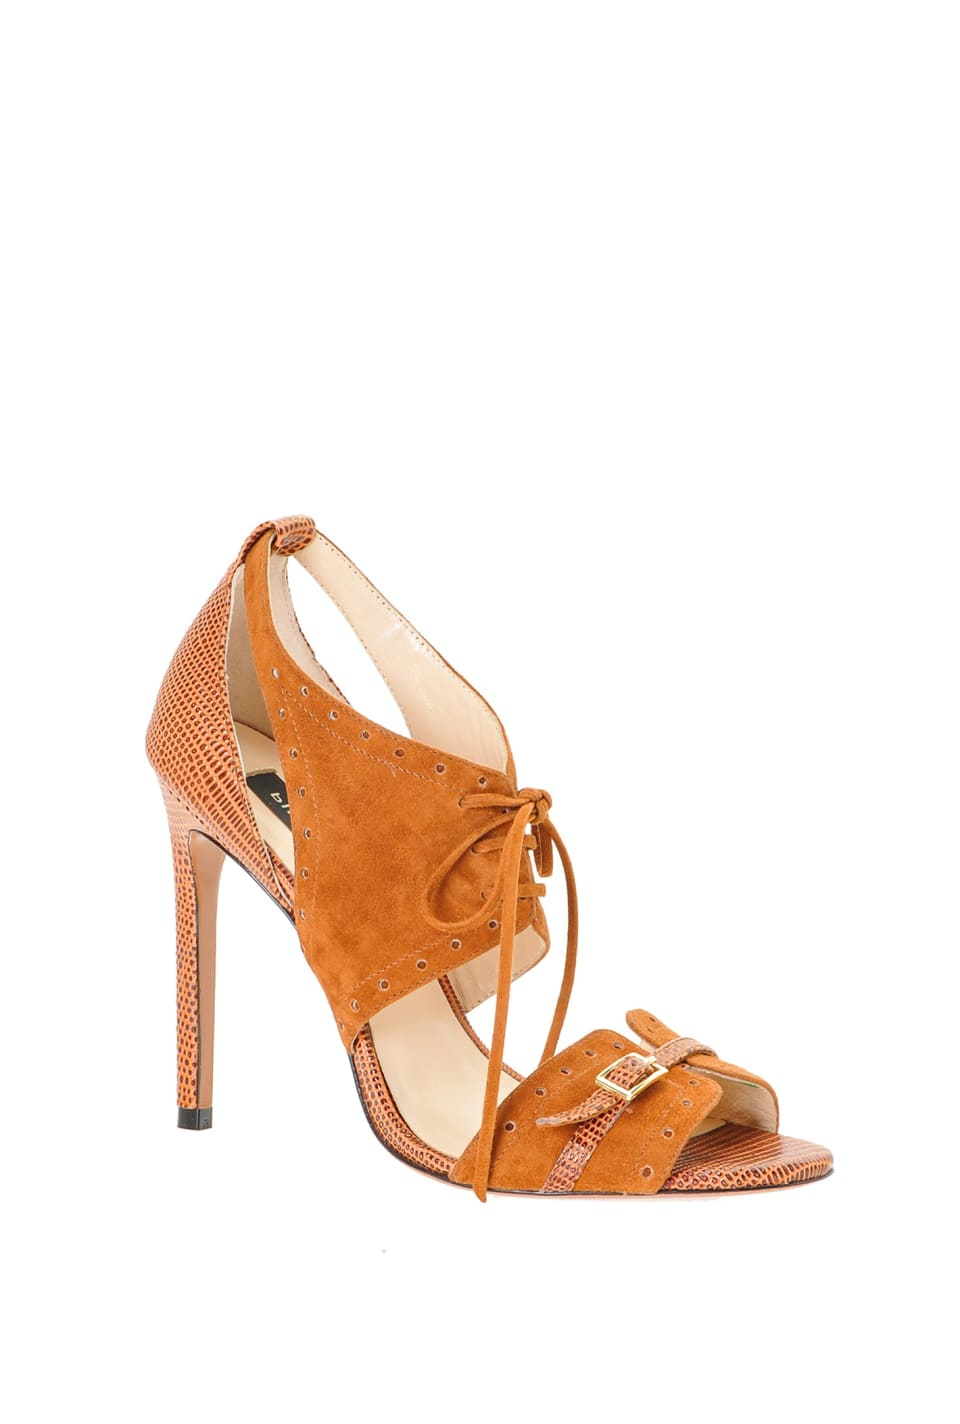 Sandals in suede and lizard-print leather - Pinko